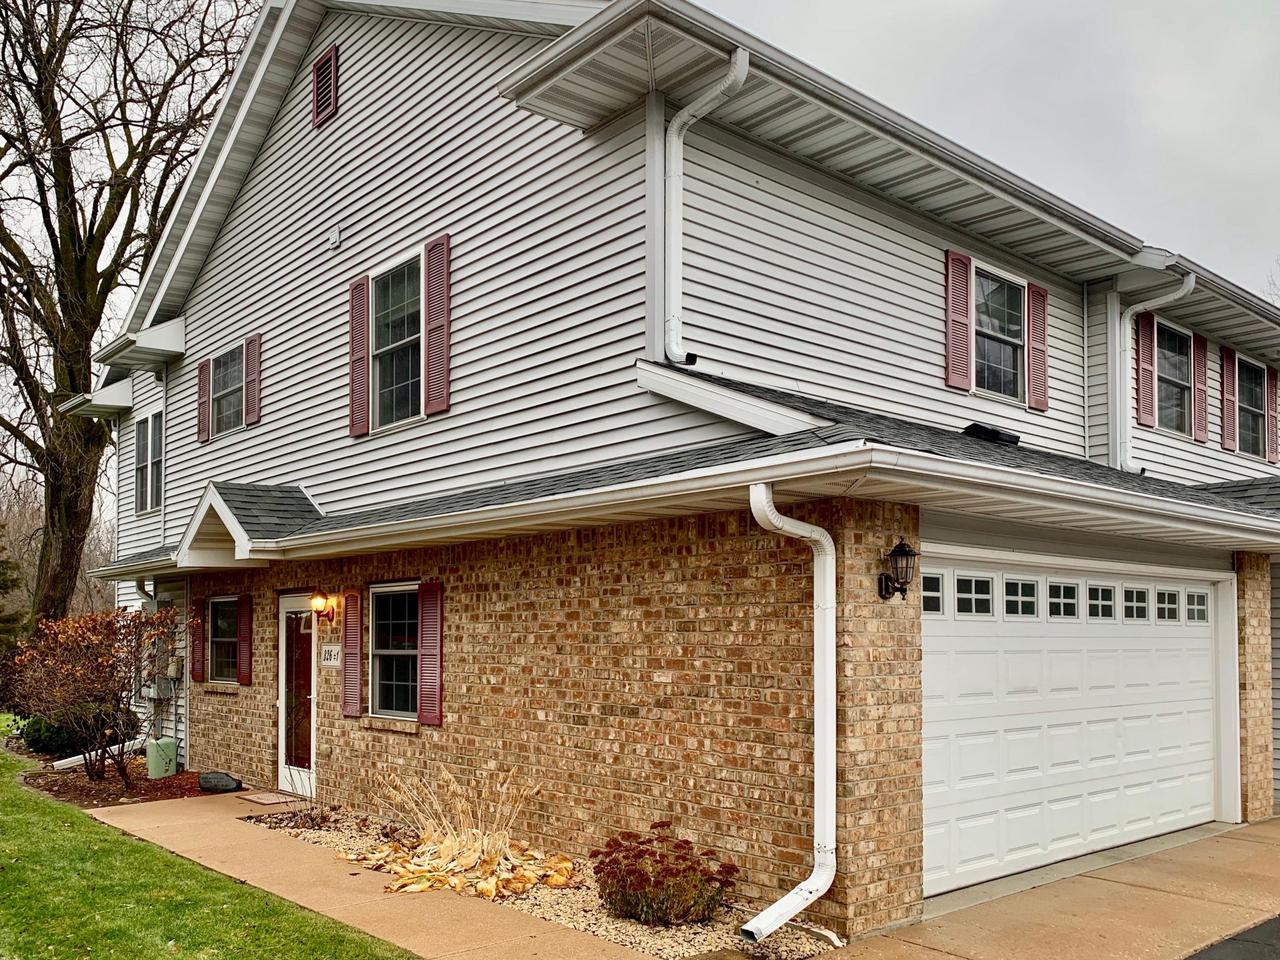 Rare FIRST FLOOR Slinger condo. Better-than-new, townhouse style, completely remodeled in 2018! NEW bright white trim, 3 panel doors, laminate floors, carpet, granite countertops, under mount sinks, and faucets. Eat-in kitchen has loads of cabinets and convenient pantry closet. Living room has corner gas fireplace with stone surround. You'll finally get that sunny corner office you've always deserved! Take your breaks on the concrete patio and enjoy the greenspace. Private master suite upstairs with dual closets and shower stall. Second bedroom also features 2 large closets. No more cold feet: IN-FLOOR HEAT extends to 2-car garage, which also has spigot and floor drain. In-unit laundry and utility sink. Walk to downtown, Slinger schools, park, and skiing. A minute to Hwy 41. MUST SEE!